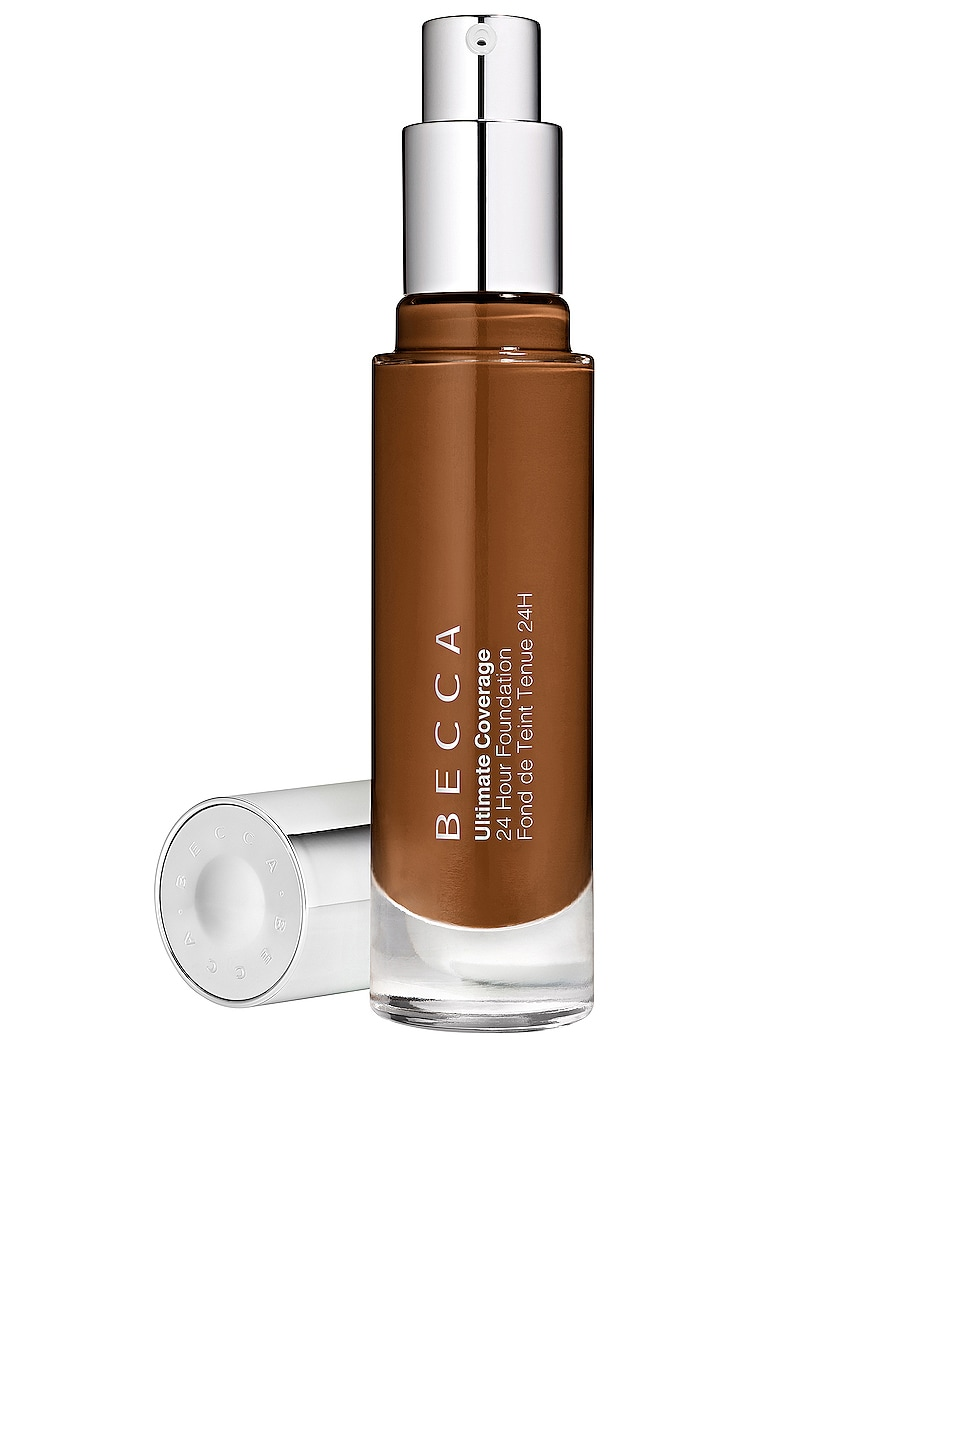 BECCA Ultimate Coverage 24 Hour Foundation in Sienna